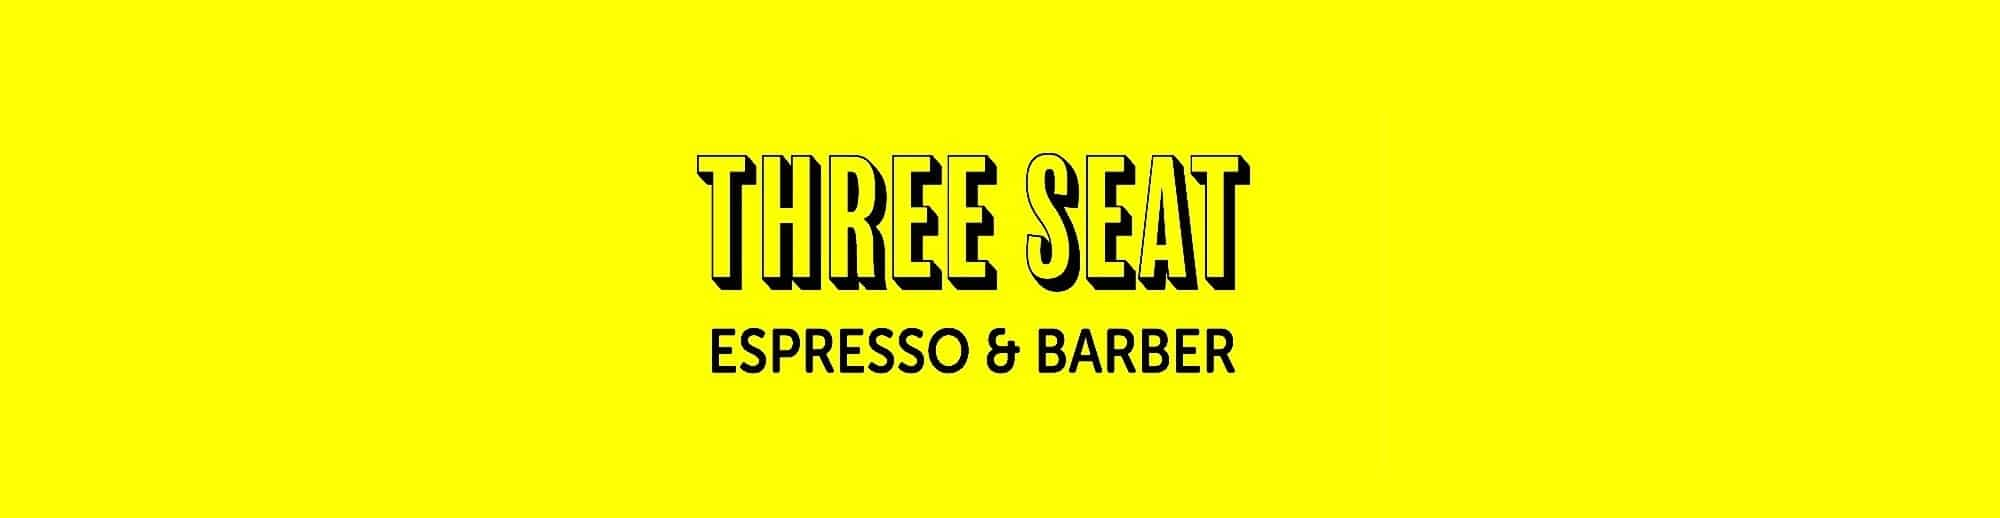 Aussie Cafés in NYC – and where to find them:  Three Seat Espresso & Barber